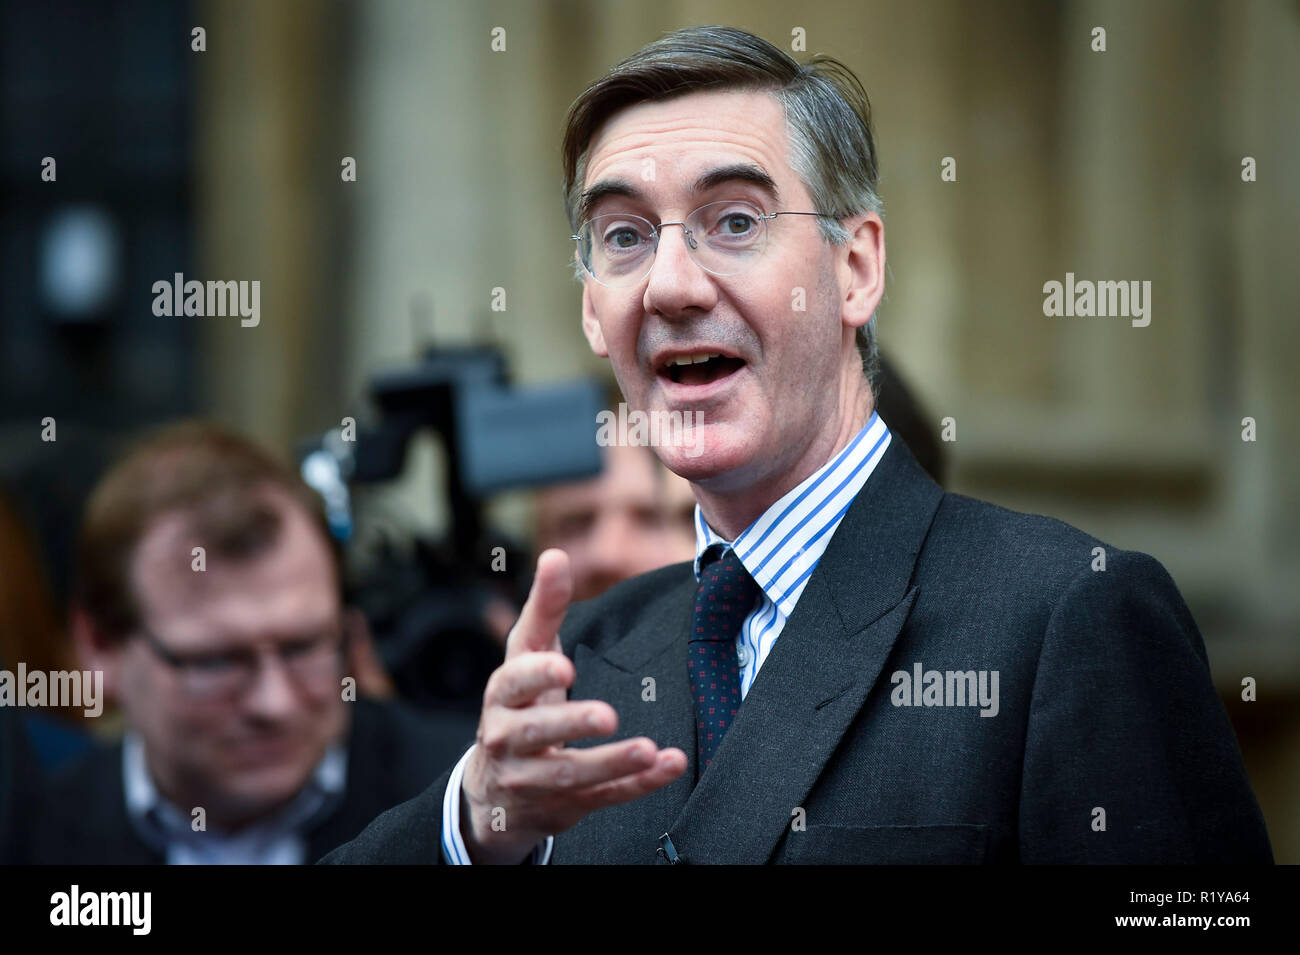 London, UK.  15 November 2018.  Jacob Rees-Mogg MP for Norrth East Somerset, addresses the media outside the House of Commons, the day after Prime Minister Theresa May and her Cabinet reached consensus on the draft Brexit agreement, and on a morning when several ministerial resignations have taken place. A vote of no confidence in the leadership of Theresa May, Prime Minister, has been called by Mr Rees-Mogg. Credit: Stephen Chung / Alamy Live News - Stock Image